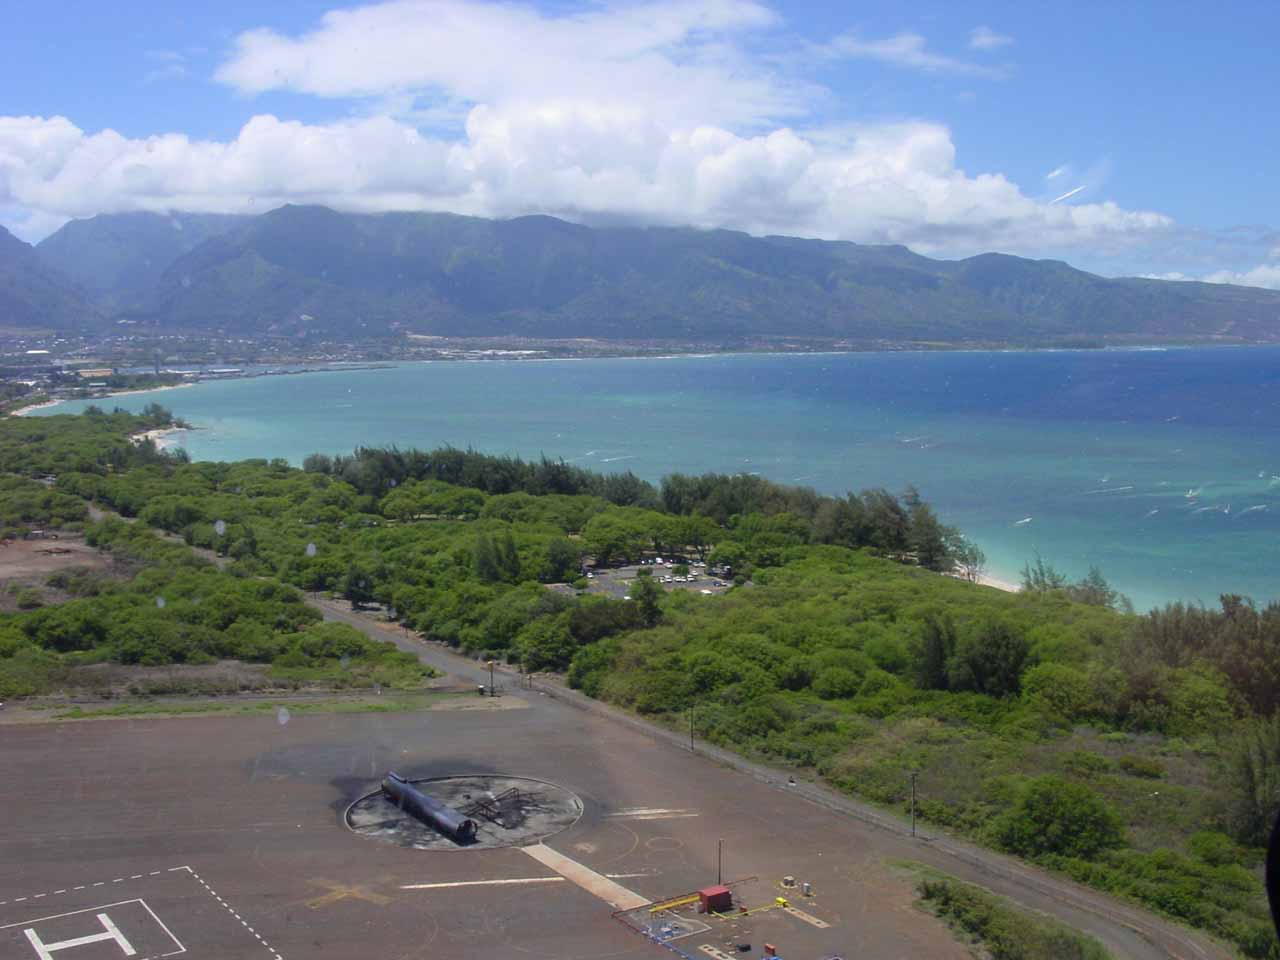 Taking off from the helipad in Kahului